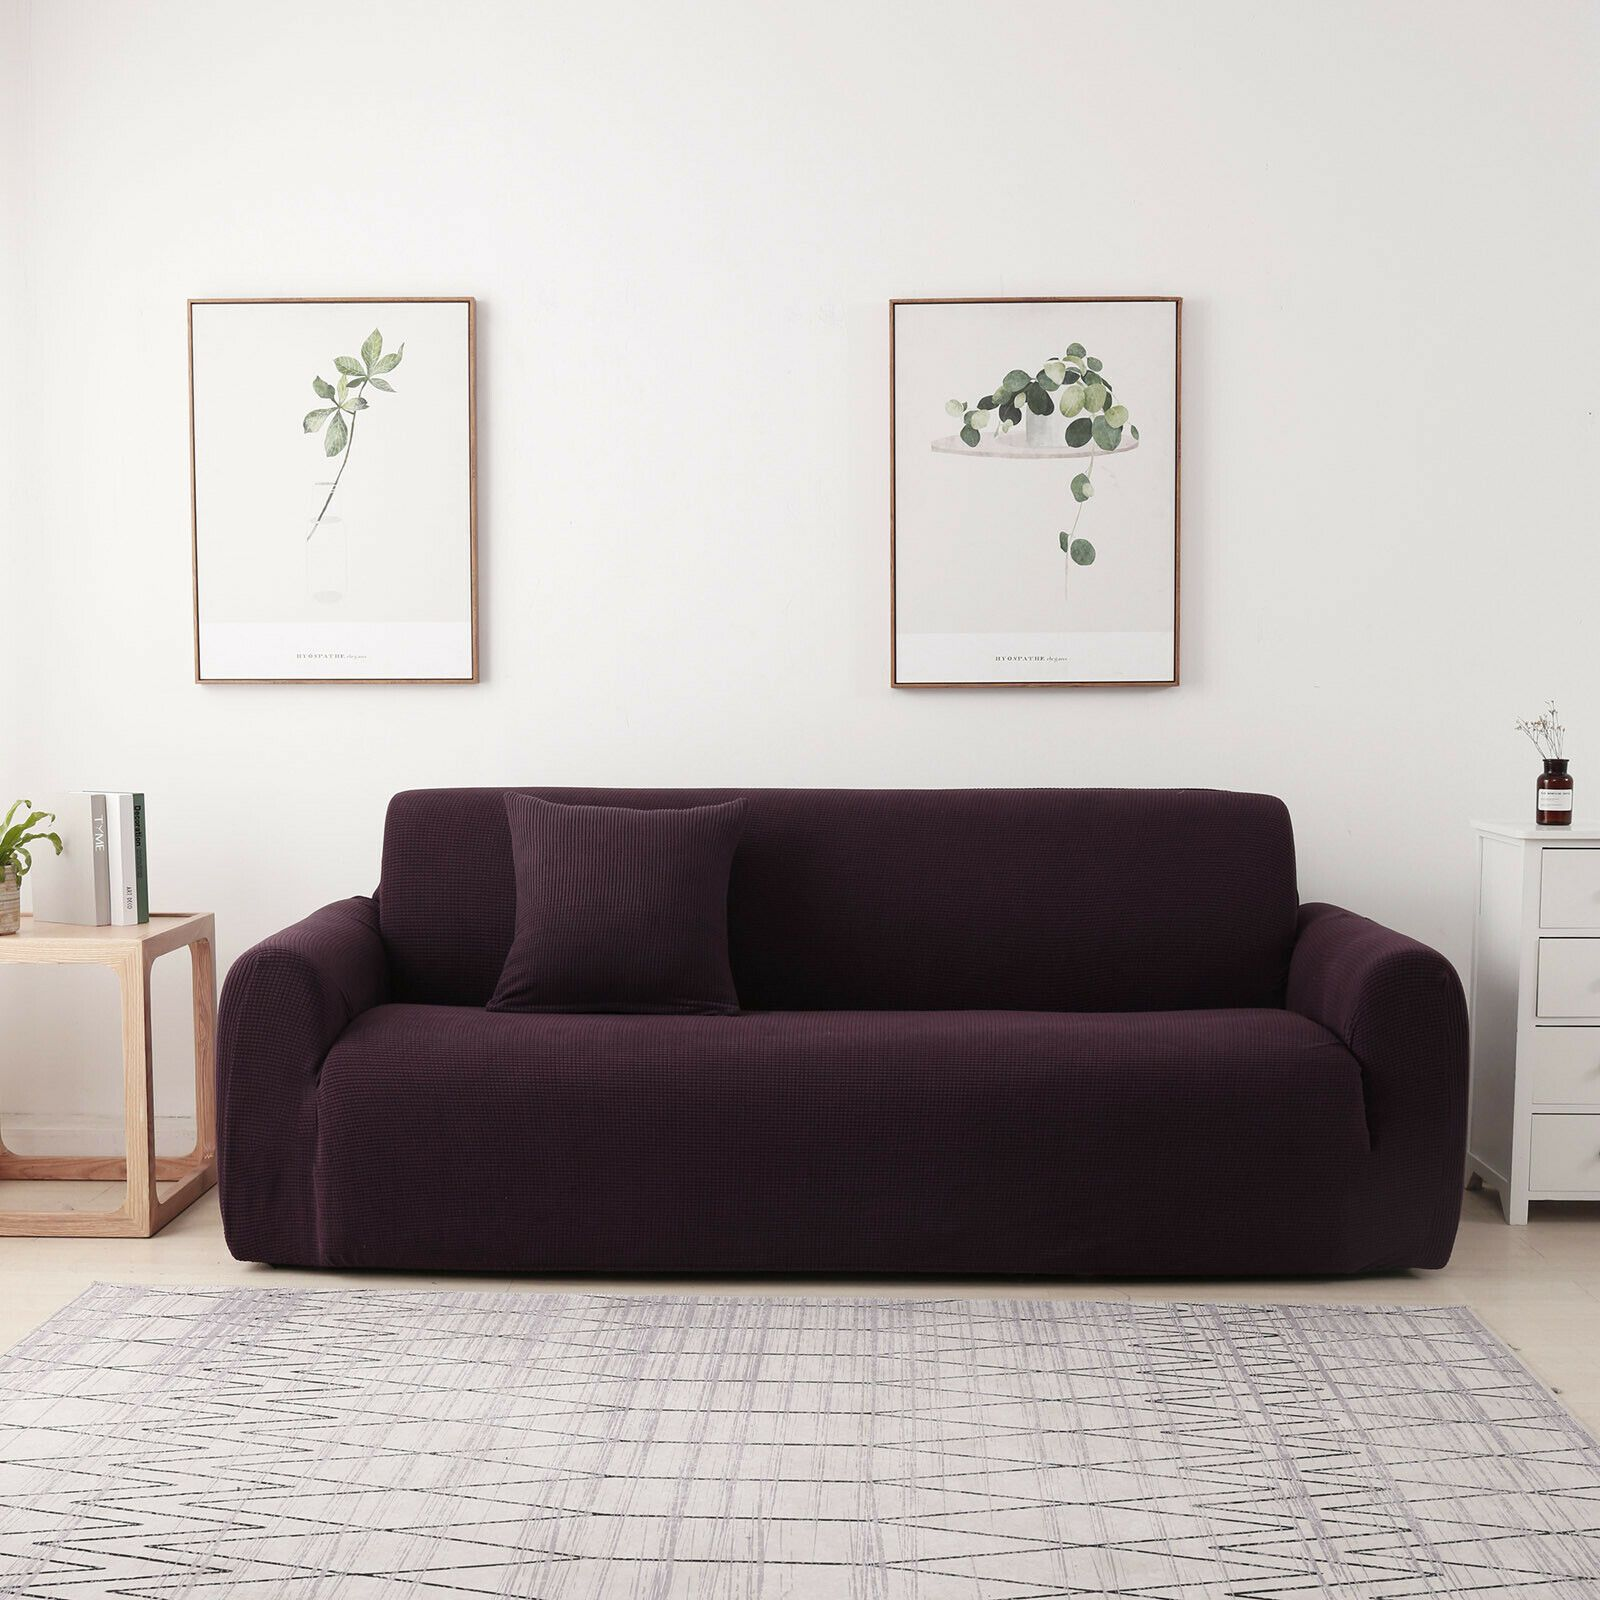 1 2 3 4 Seater Stretch Sofa Covers Chair Couch Cover Elastic Slipcover Protector Kitchen Sofa Ideas Of Kitchen Sofa Kitchens In 2020 Kitchen Sofa Sofa Sofa Covers